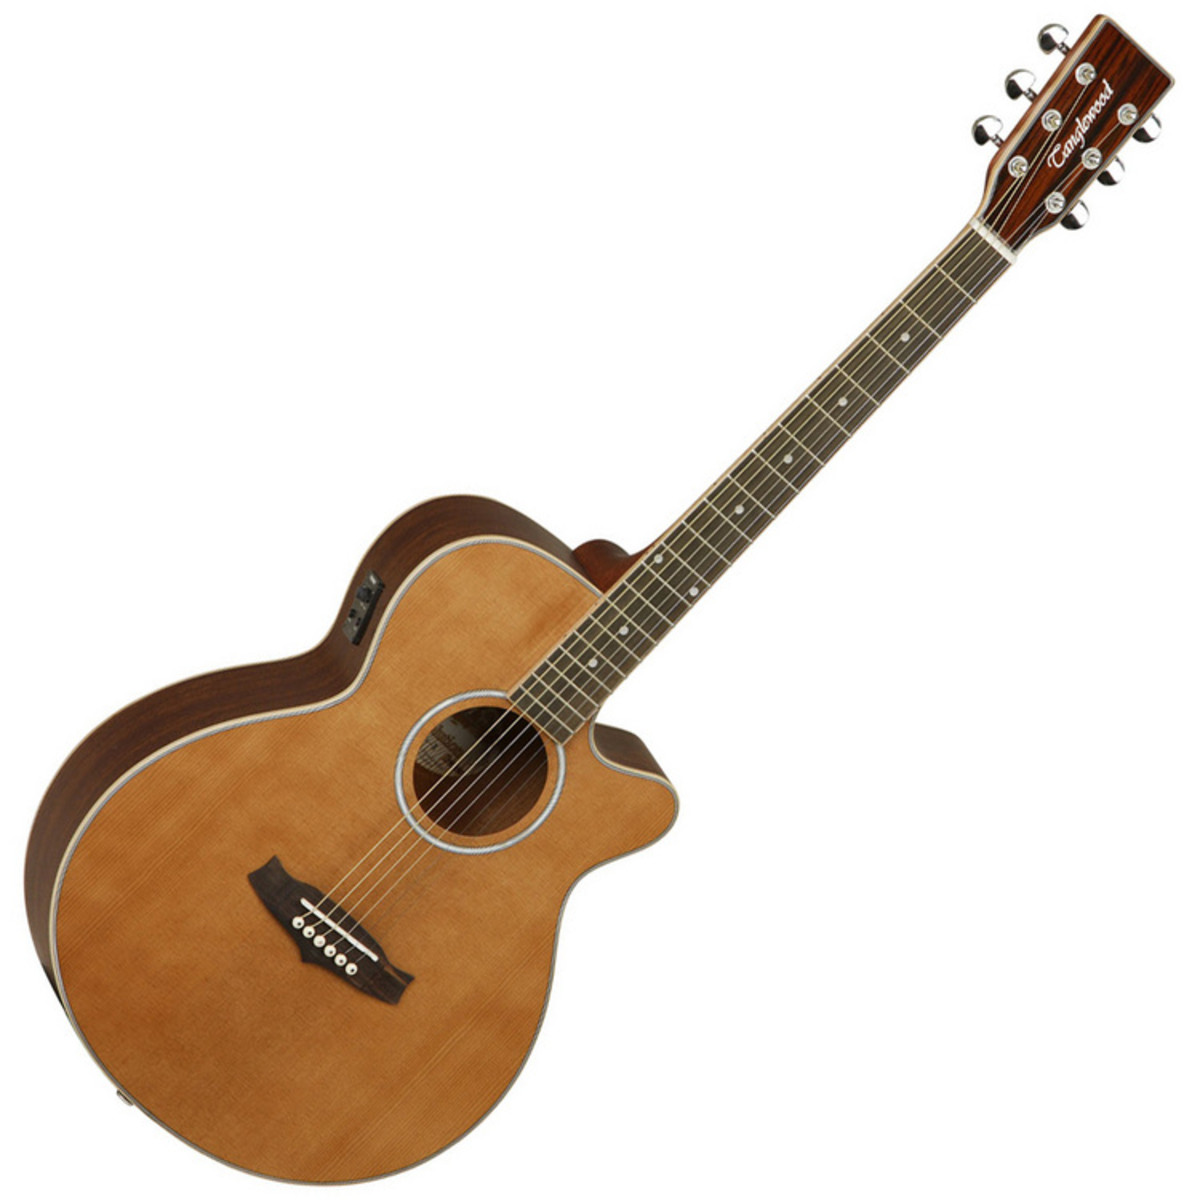 Tanglewood evolution tsf ce n electro acoustic guitar for The tanglewood